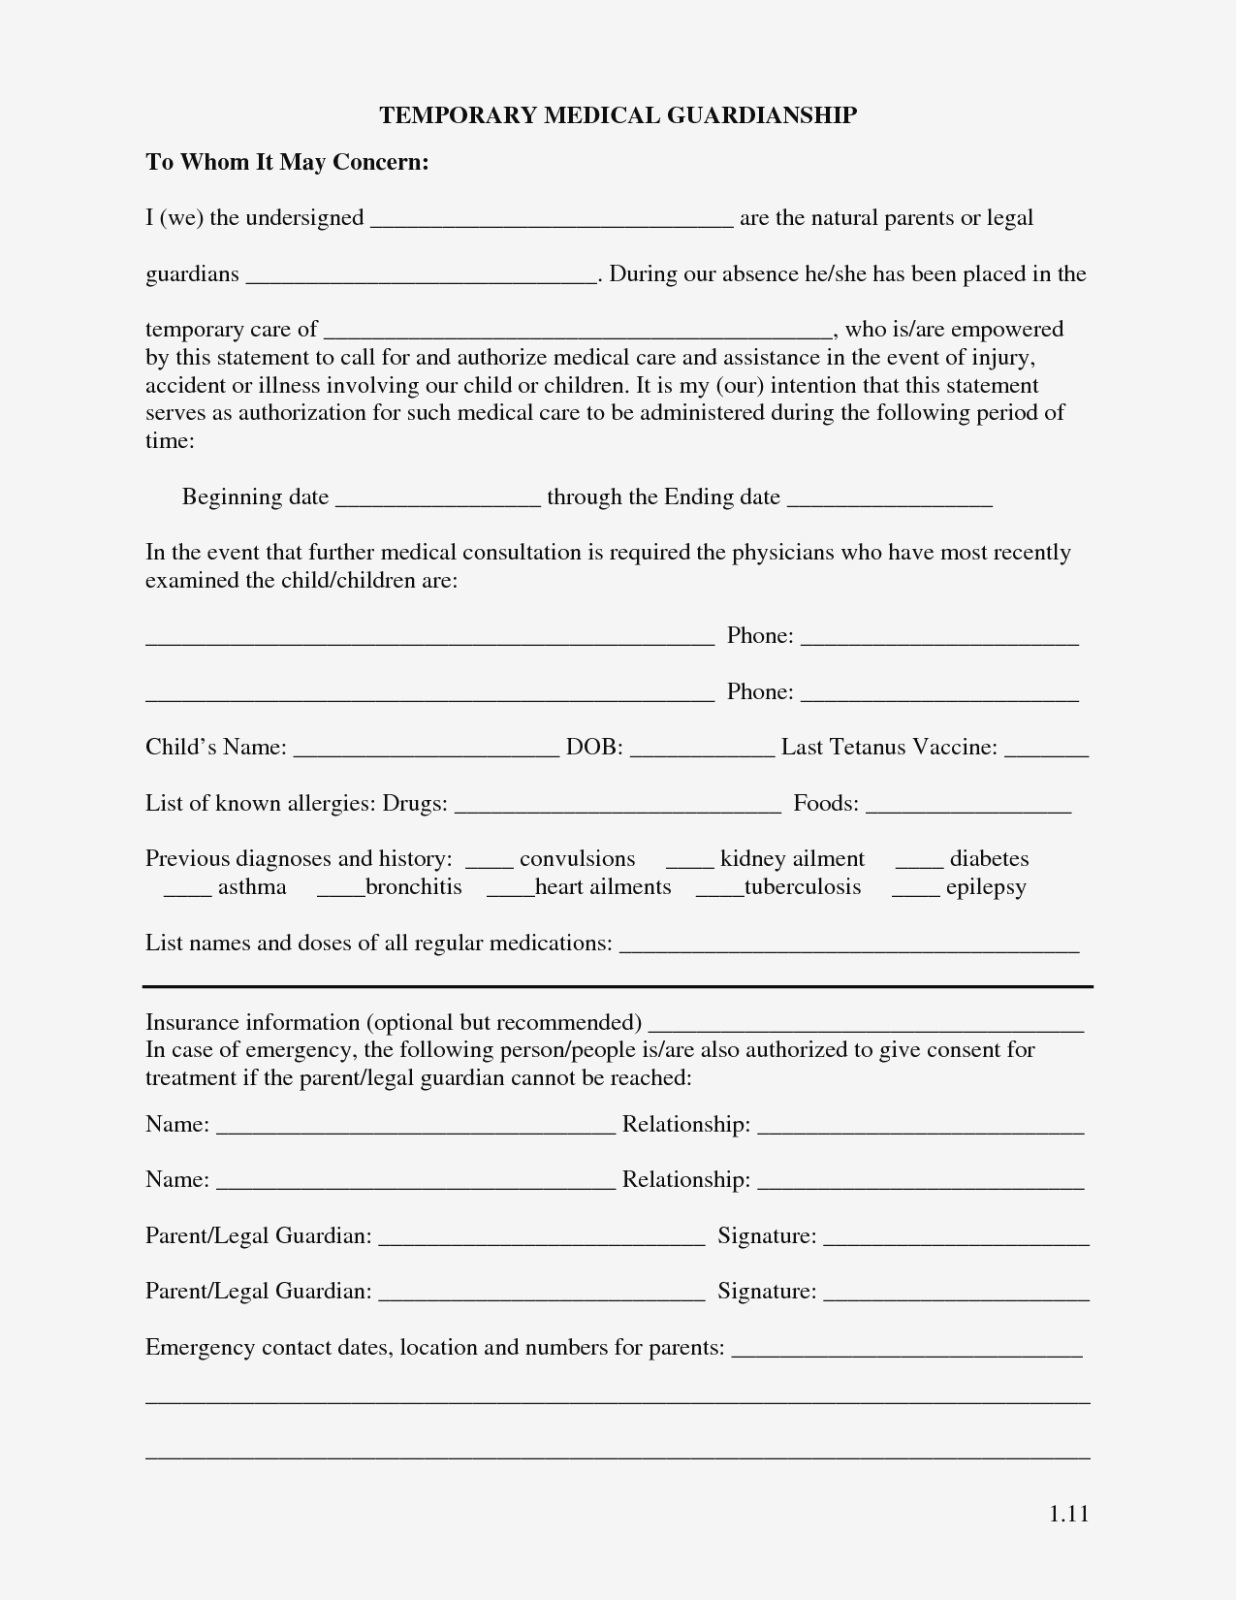 Free Printable Temporary Guardianship Forms | Forms | Pinterest - Free Printable Guardianship Forms